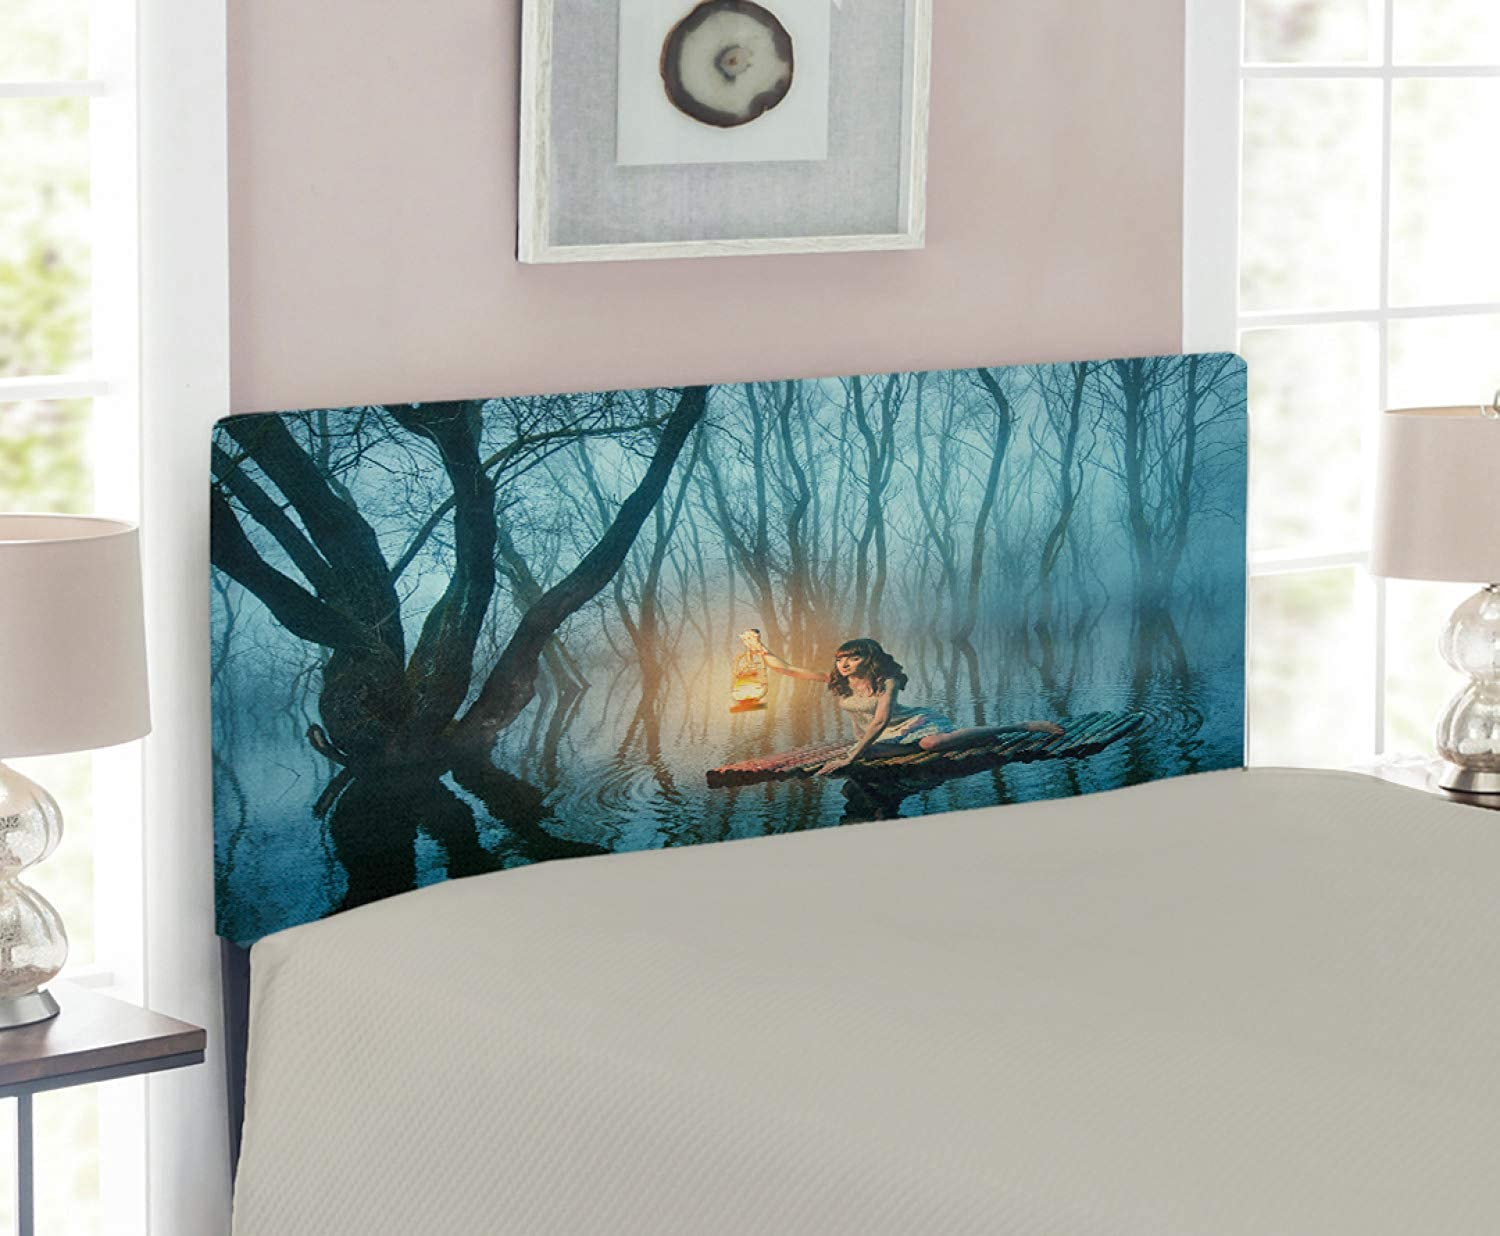 Lunarable Gothic Headboard for Twin Size Bed, Fairy Tale Woman with Lantern Floating on Lake Rustic Dress in Misty Forest, Upholstered Decorative Metal Headboard with Memory Foam, Turquoise Peach